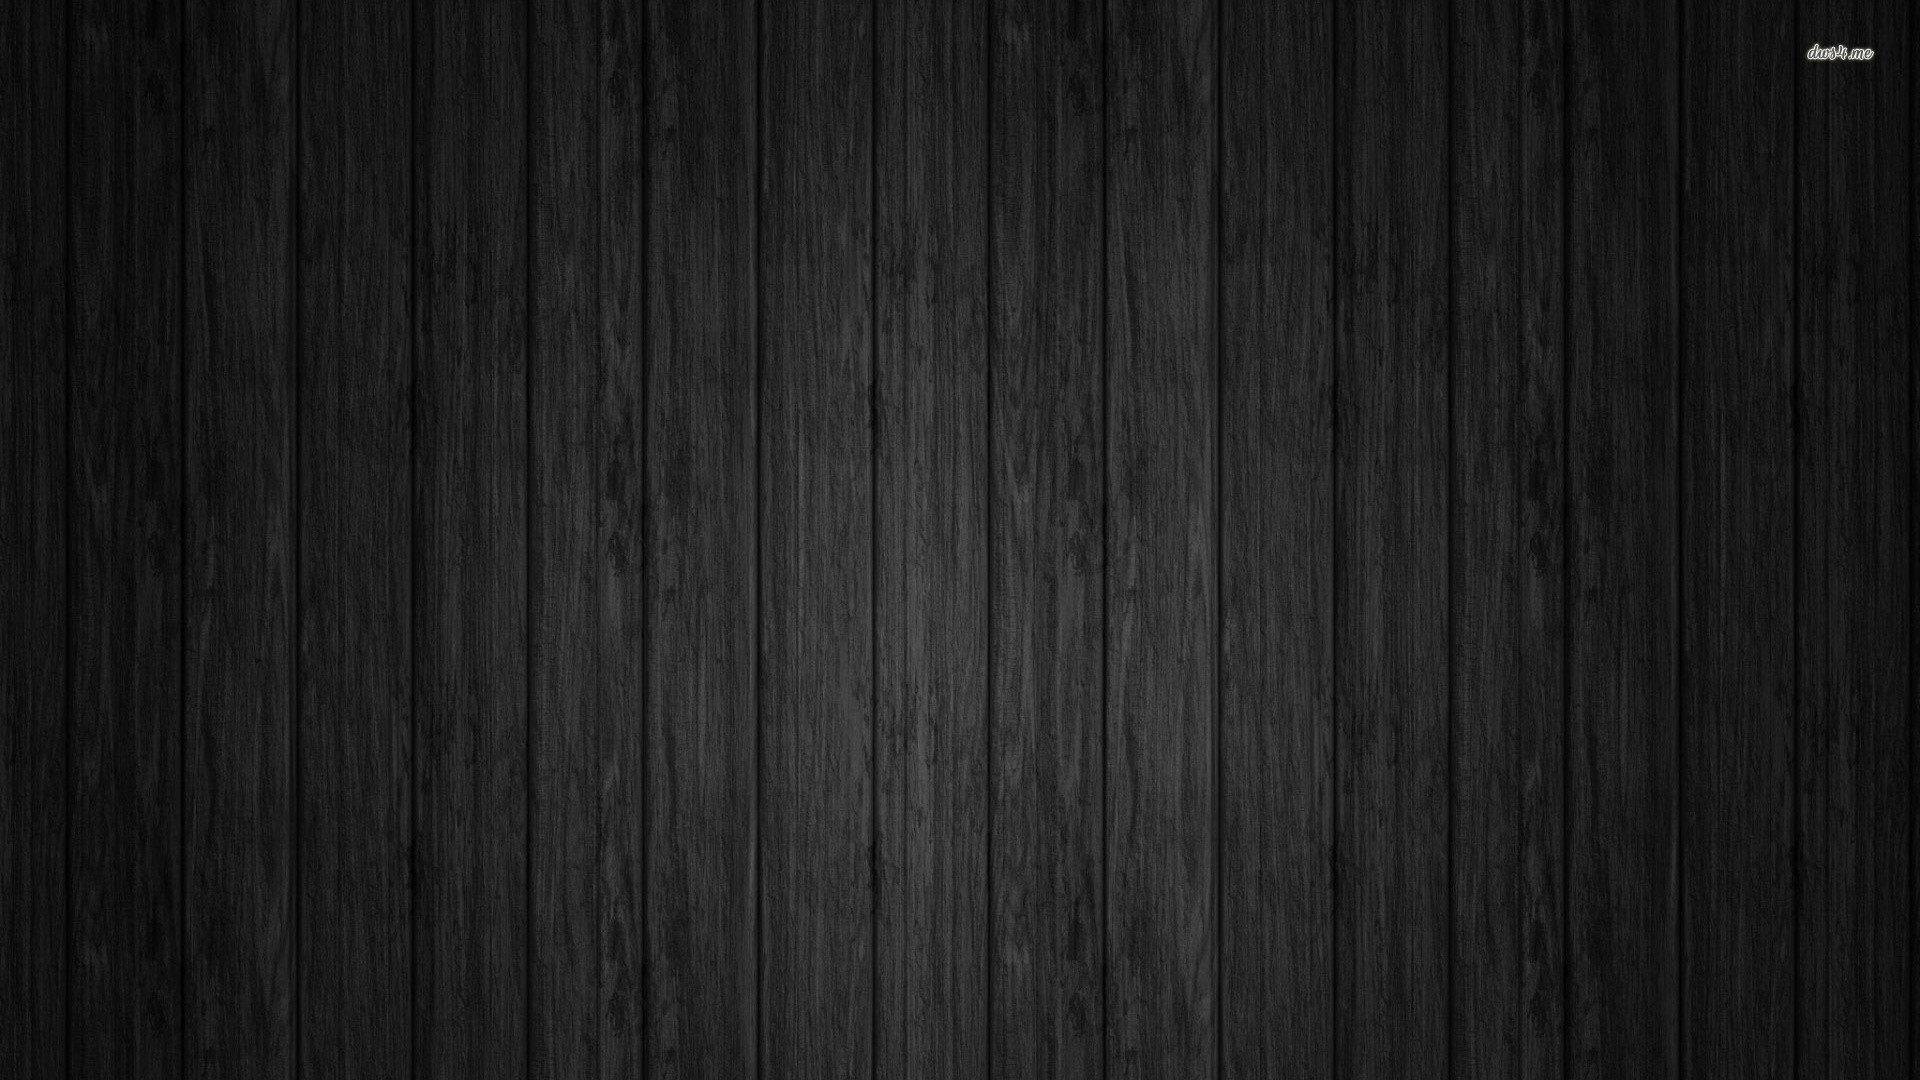 Leather Background 1 Download Free Stunning Full HD Backgrounds